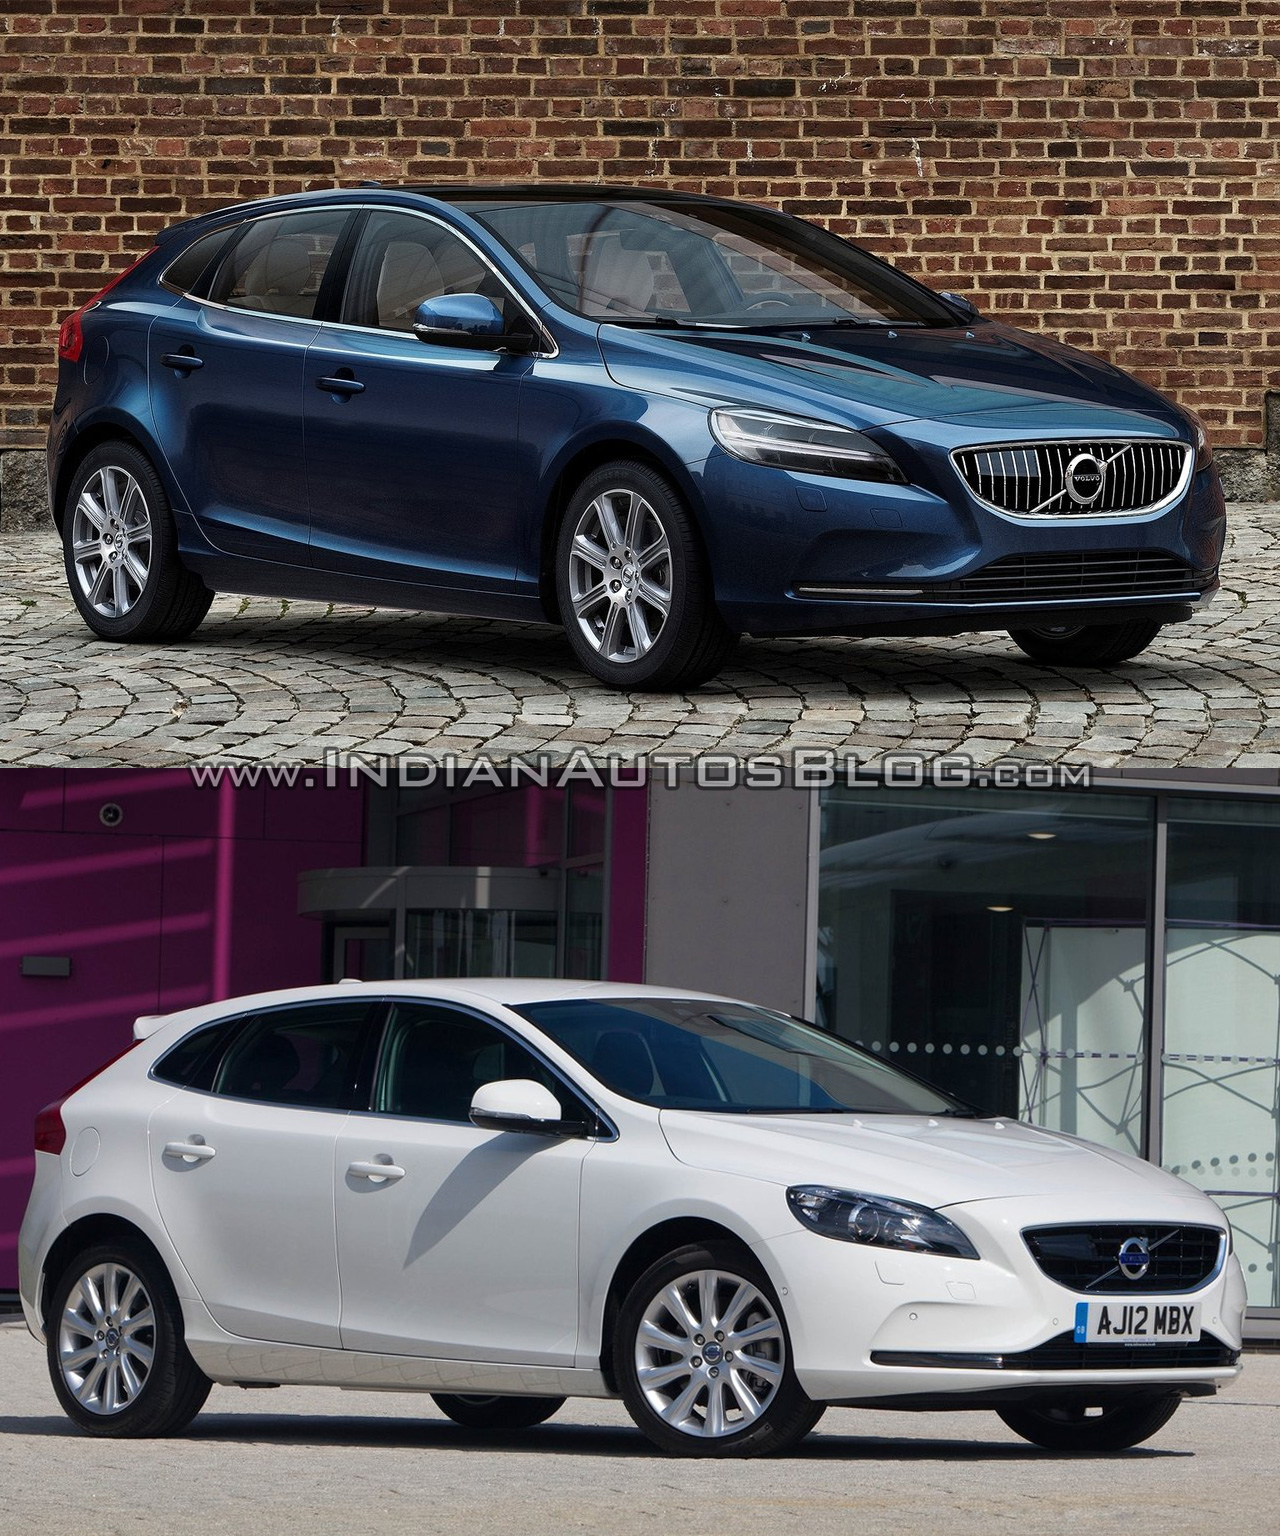 2016 Volvo V40 (facelift) front three quarters right side old vs. new